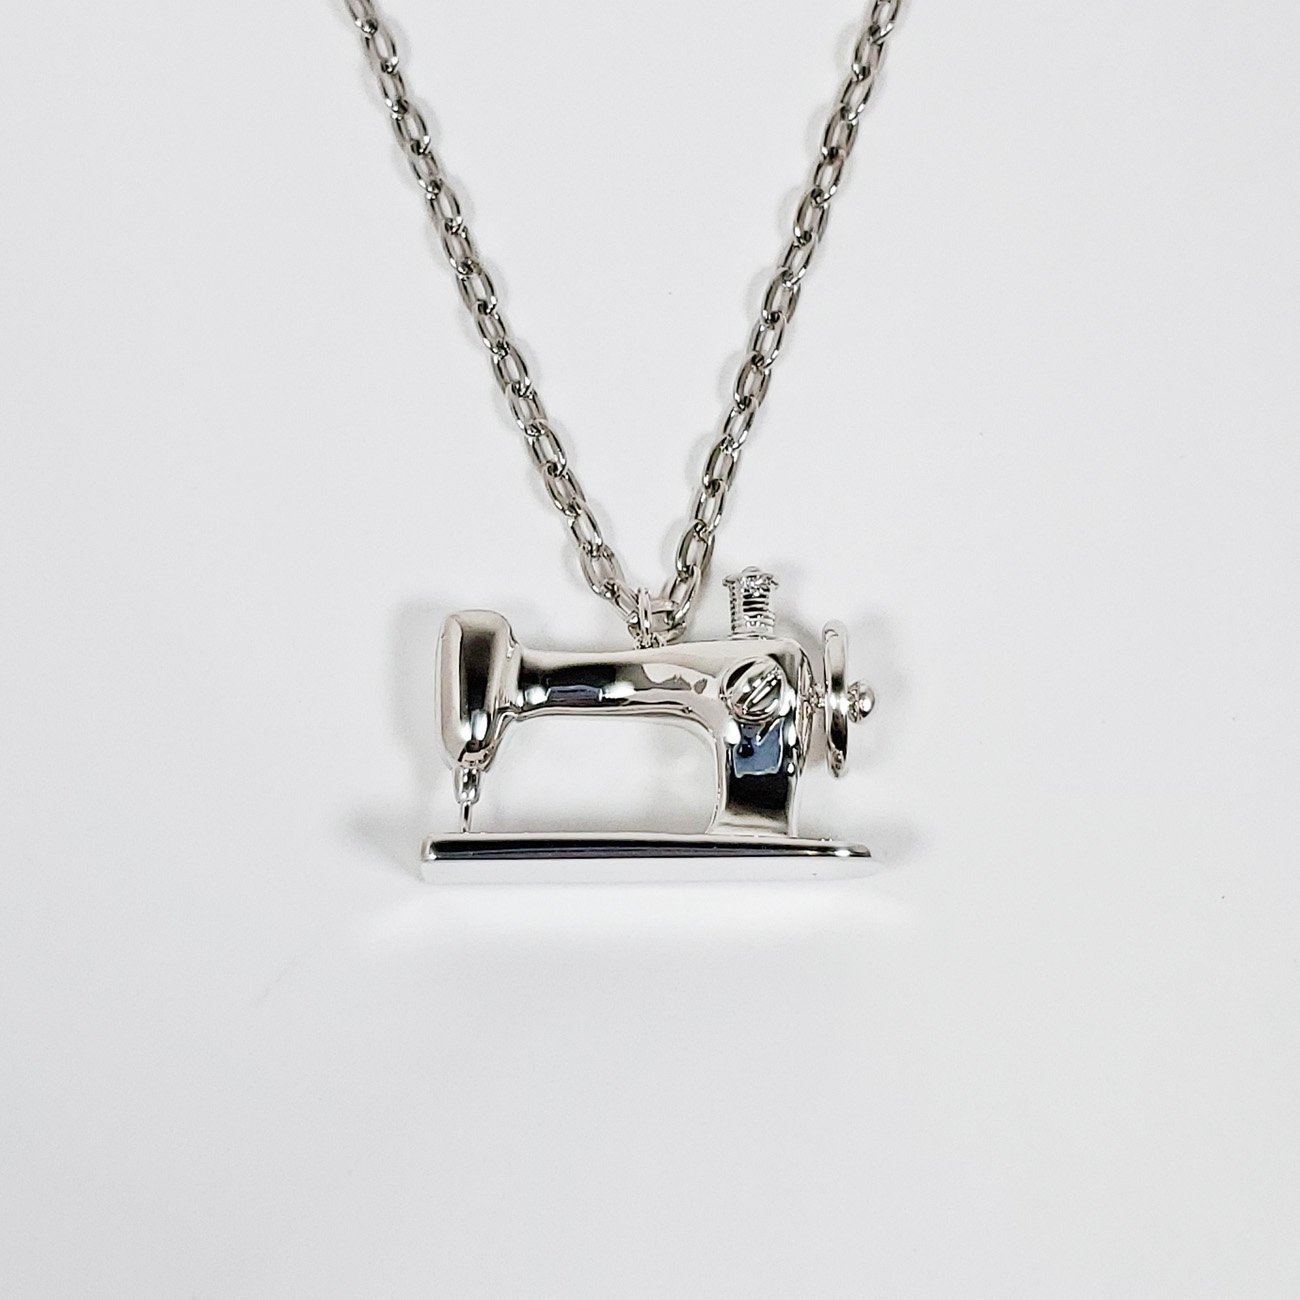 Sewing Machine Long Pendant Necklace Silver